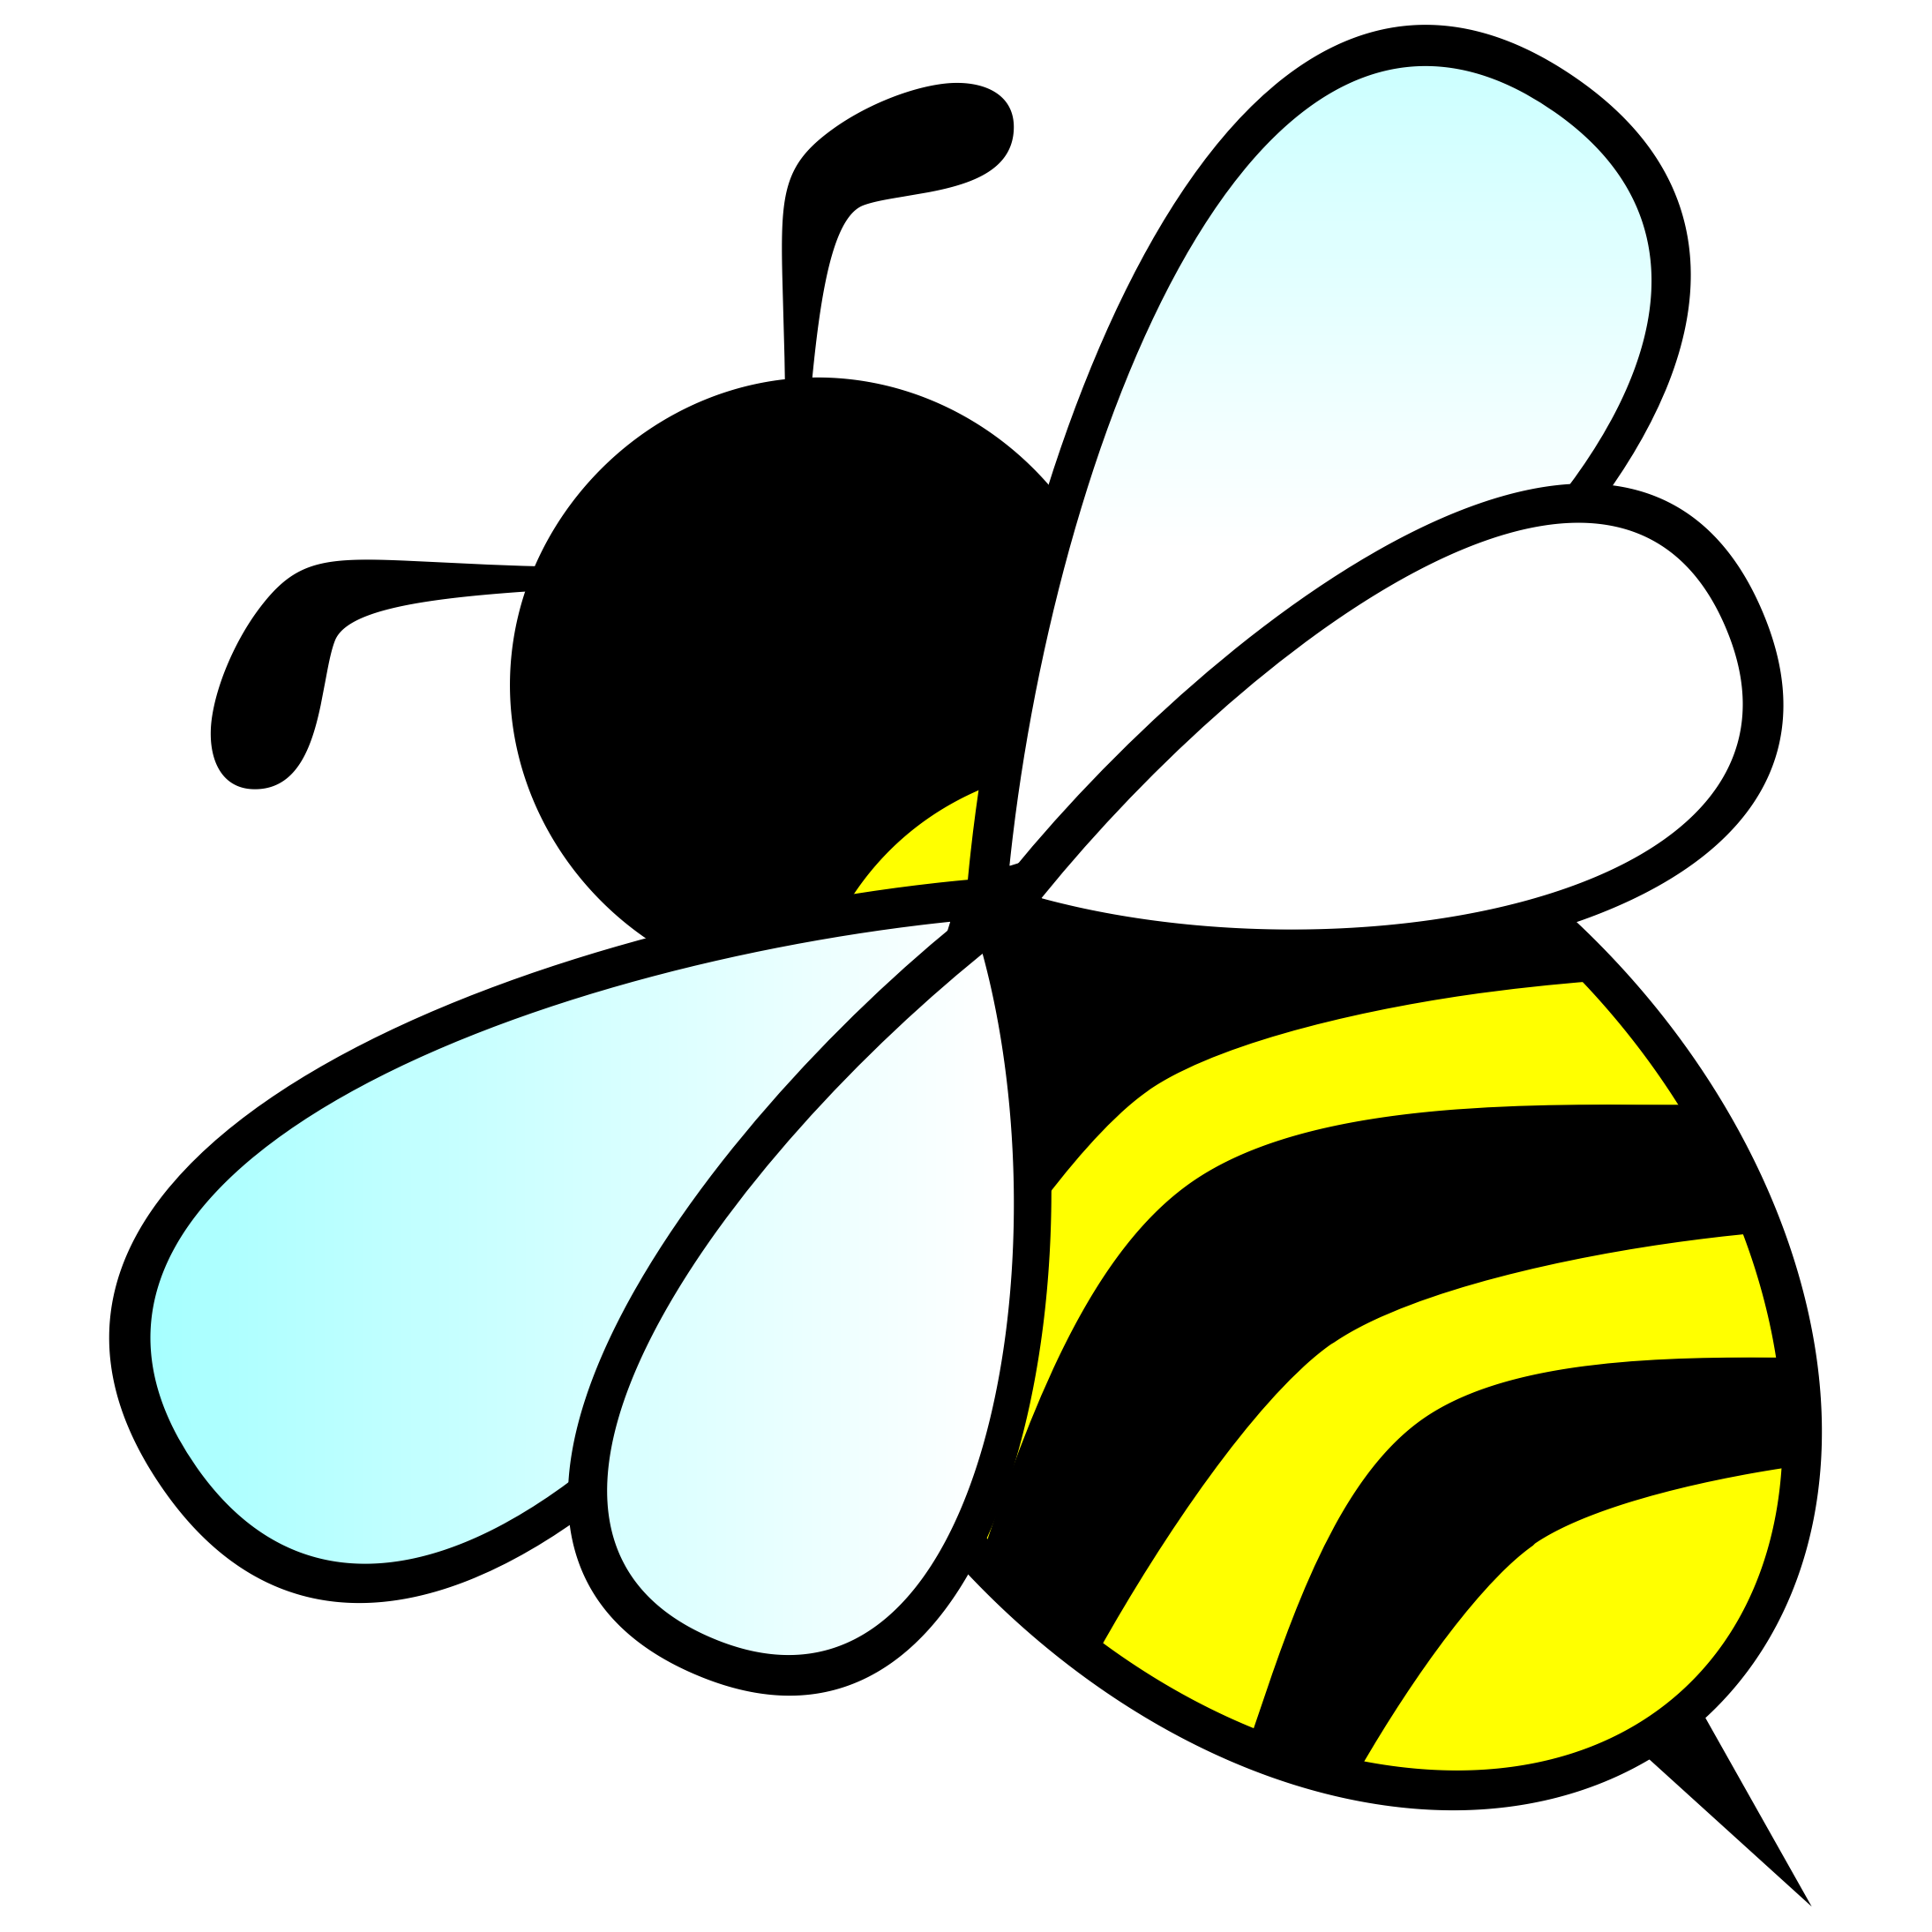 2190x2190 Bumble Bee Cute Bee Clip Art Love Bees Cartoon Clip Art More Clip